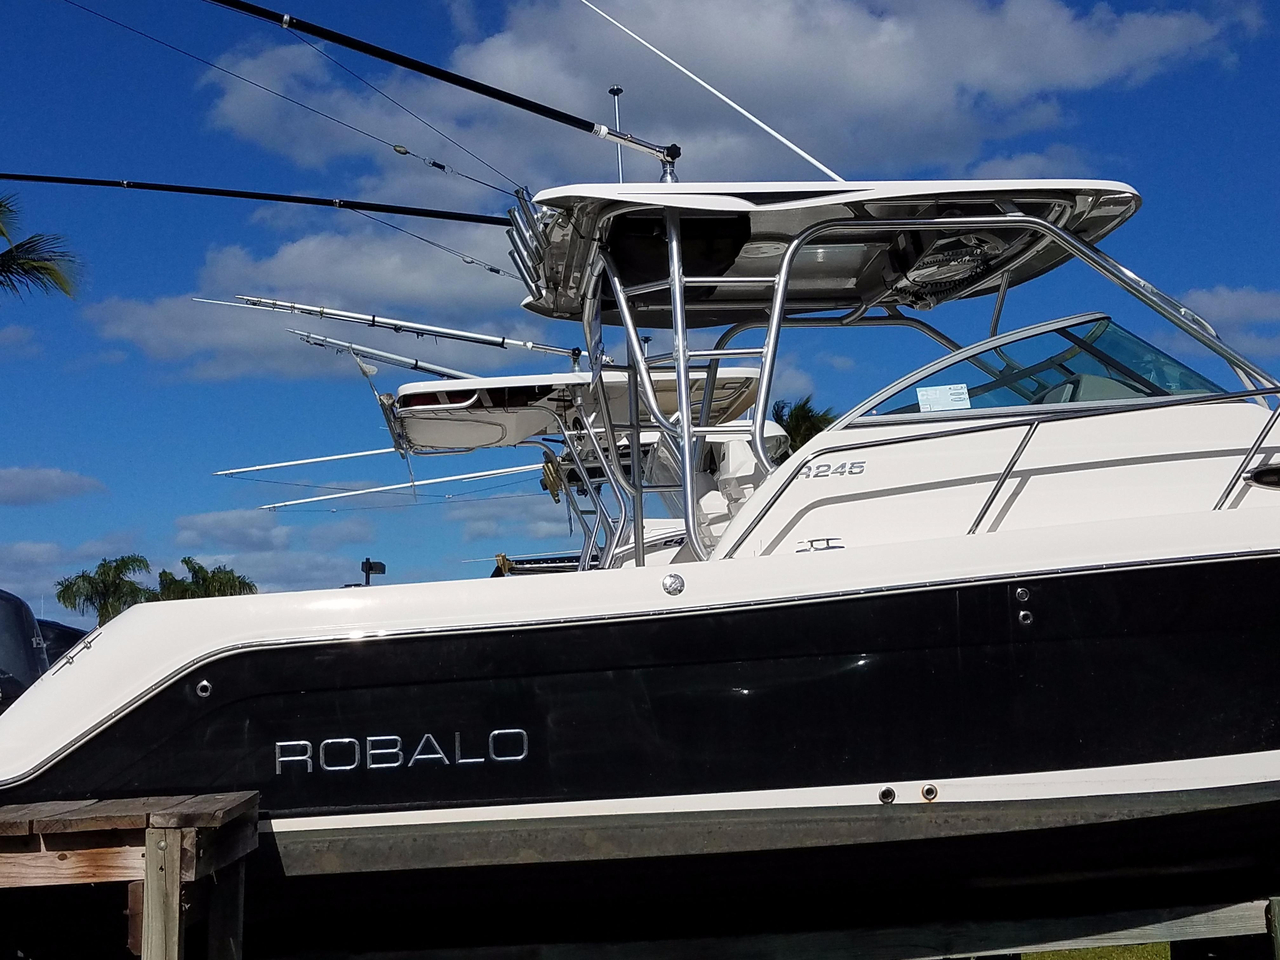 2013 used robalo r245 walkaround fishing boat for sale for Fishing boats for sale by owner